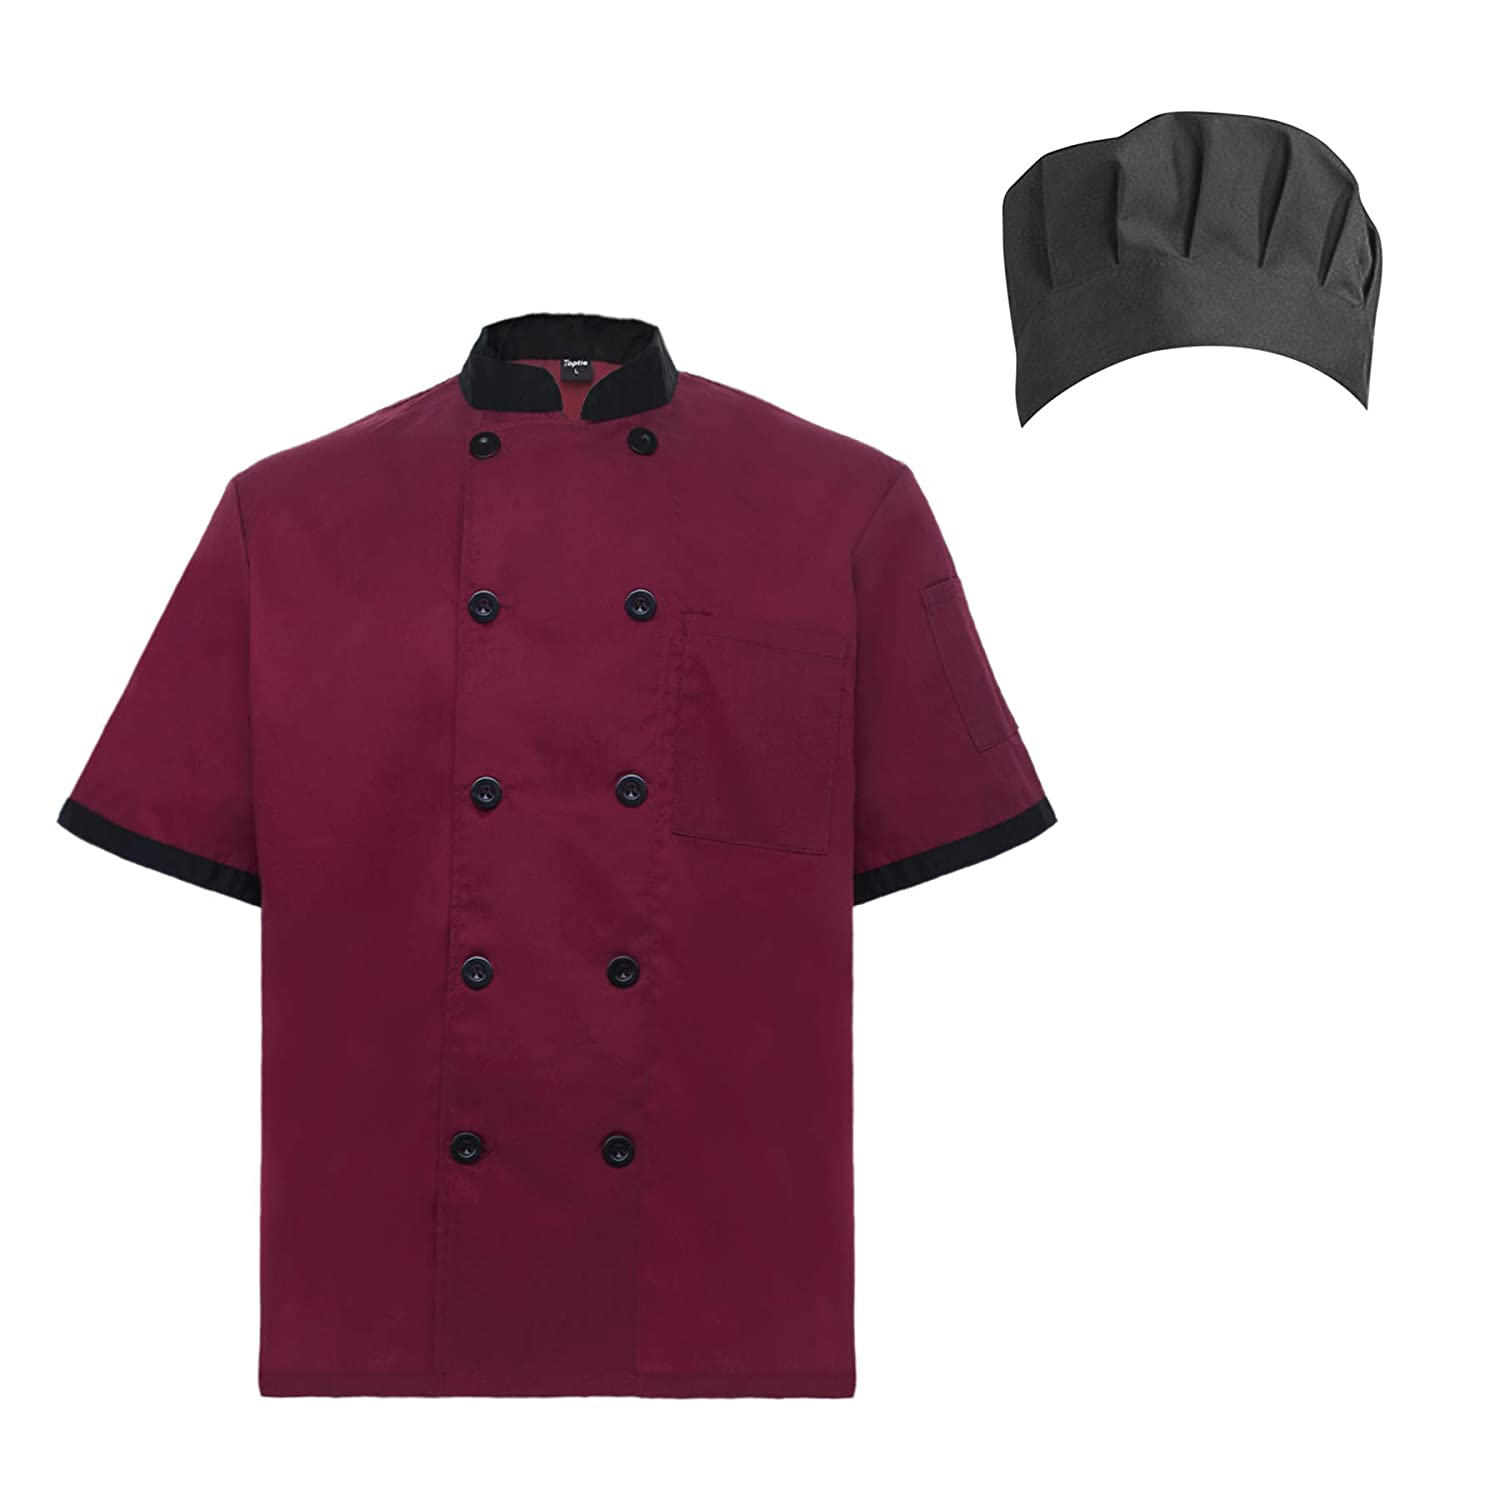 TopTie Unisex Short Sleeve Cooking Chef Coat Jacket with Adjustable Hat CHIX-DK61111